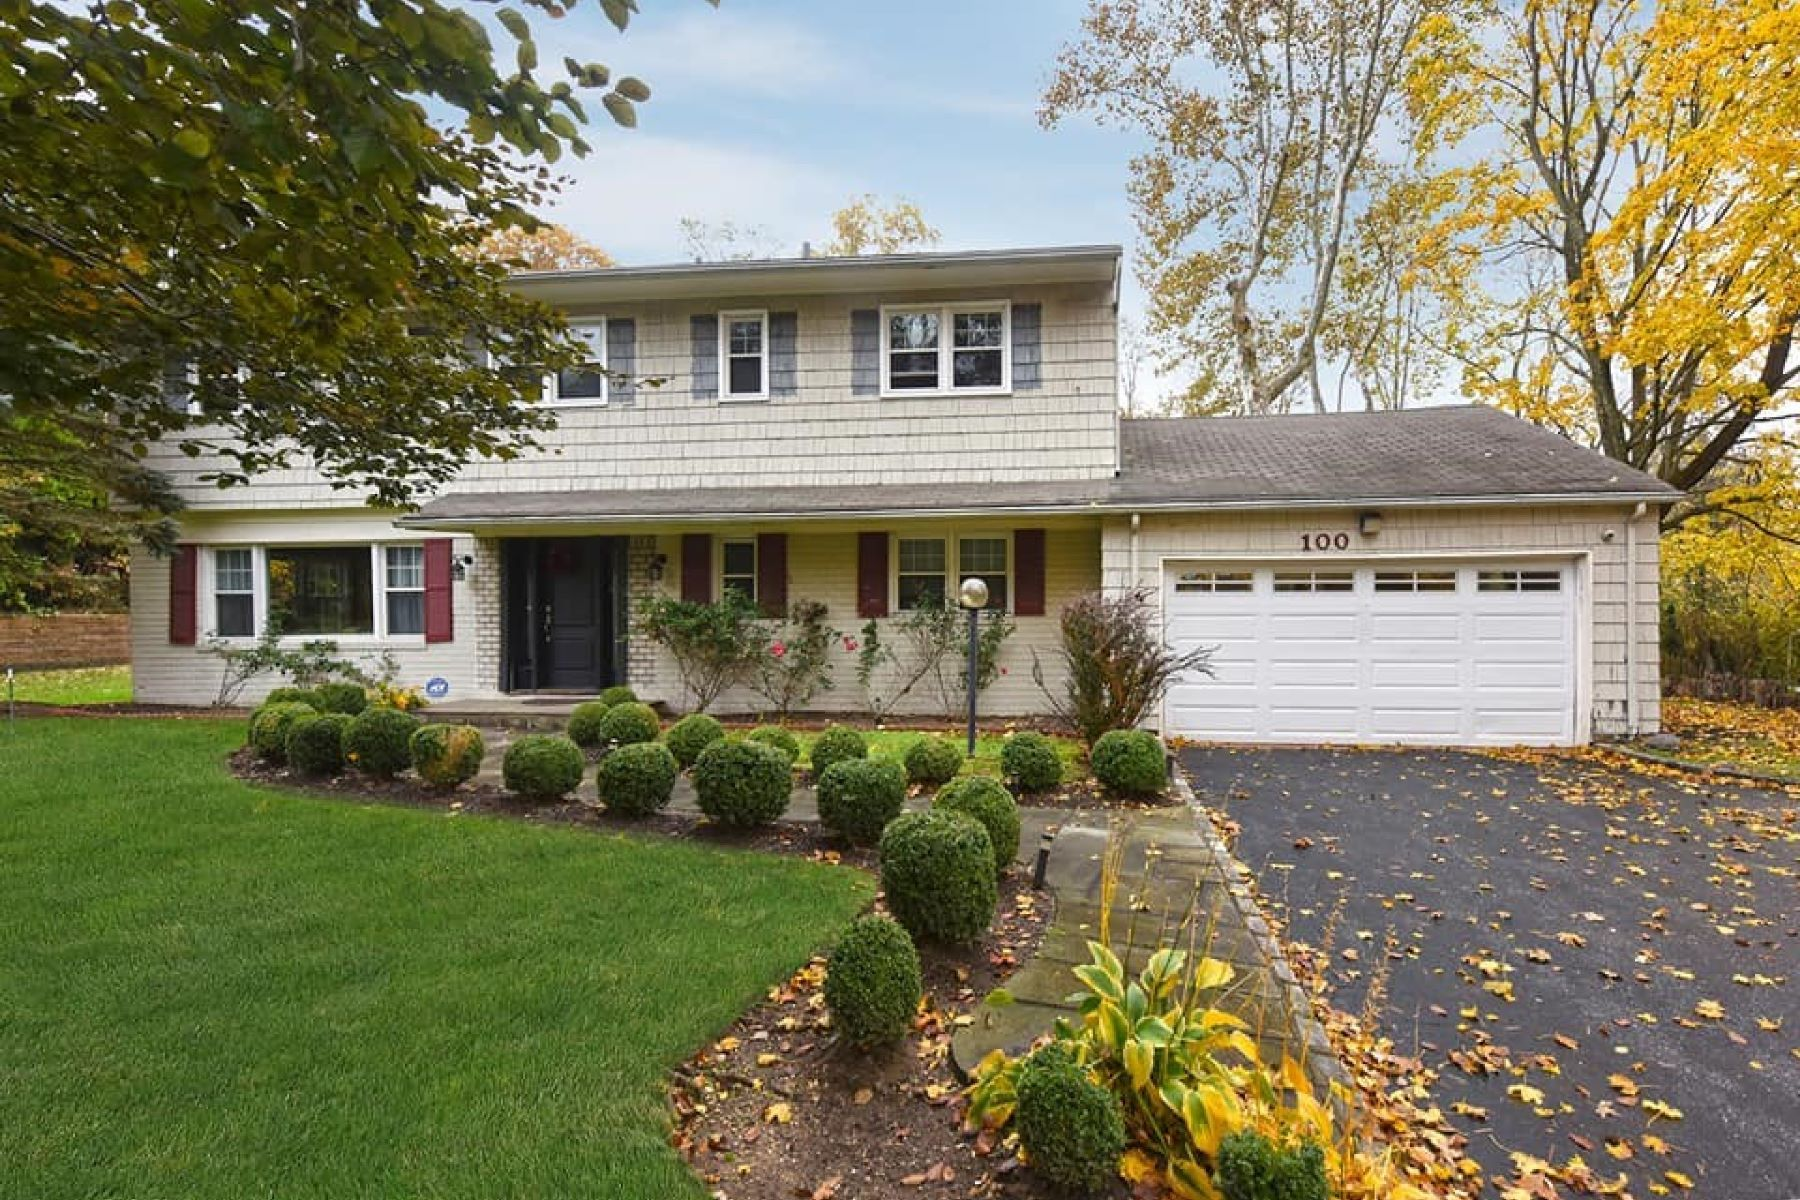 Single Family Homes for Active at East Hills 100 Elm Drive East Hills, New York 11576 United States